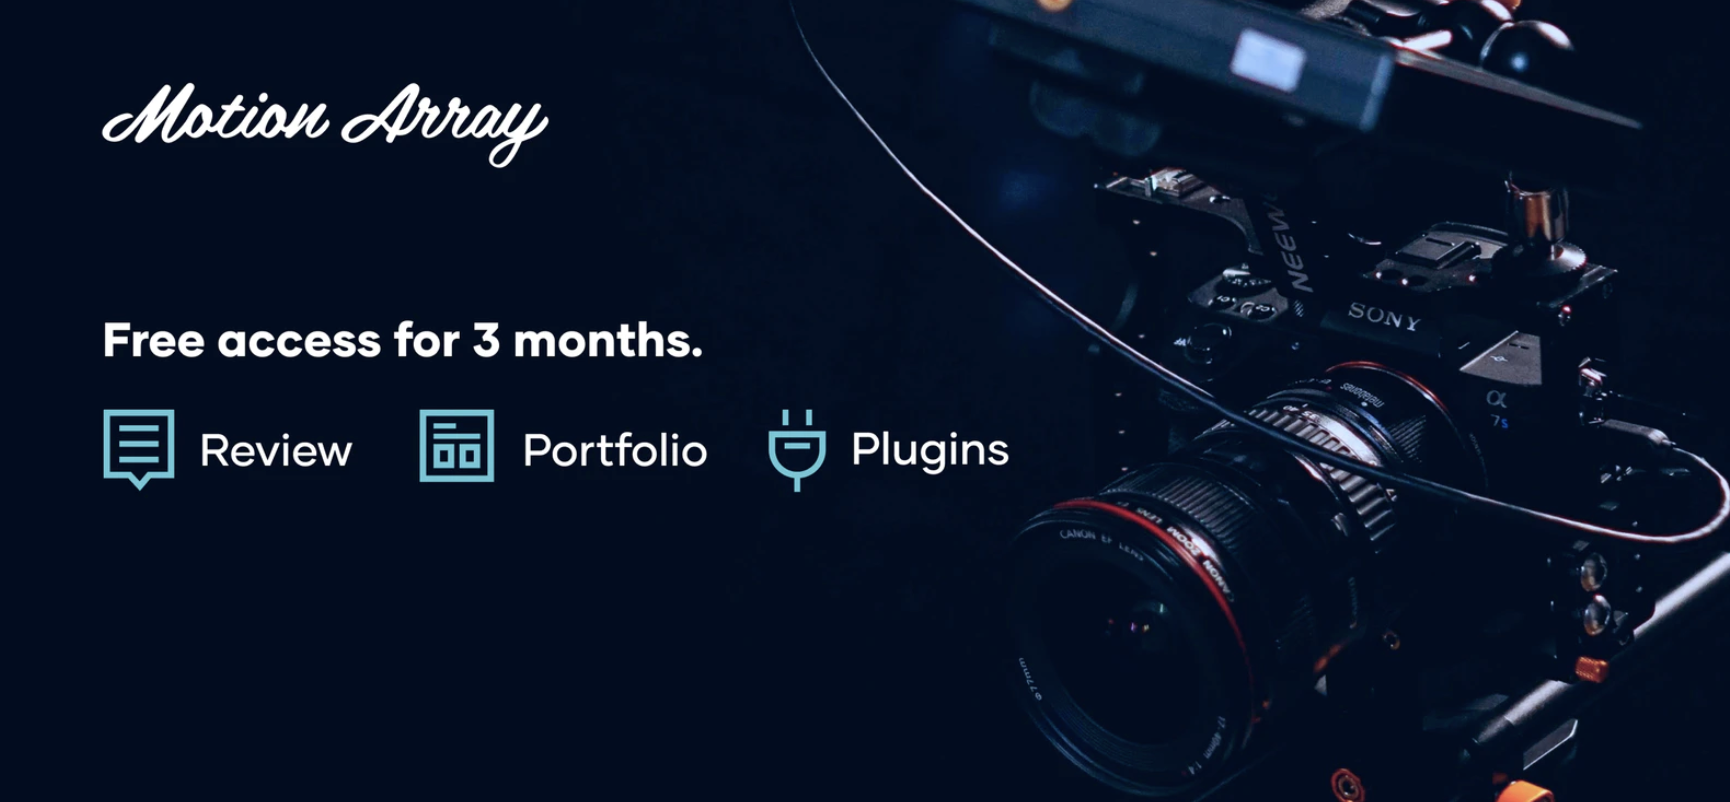 Motion Array Premiere Pro plugins library, Video Review, & Video Portfolio Builder are Free for the next 3 months